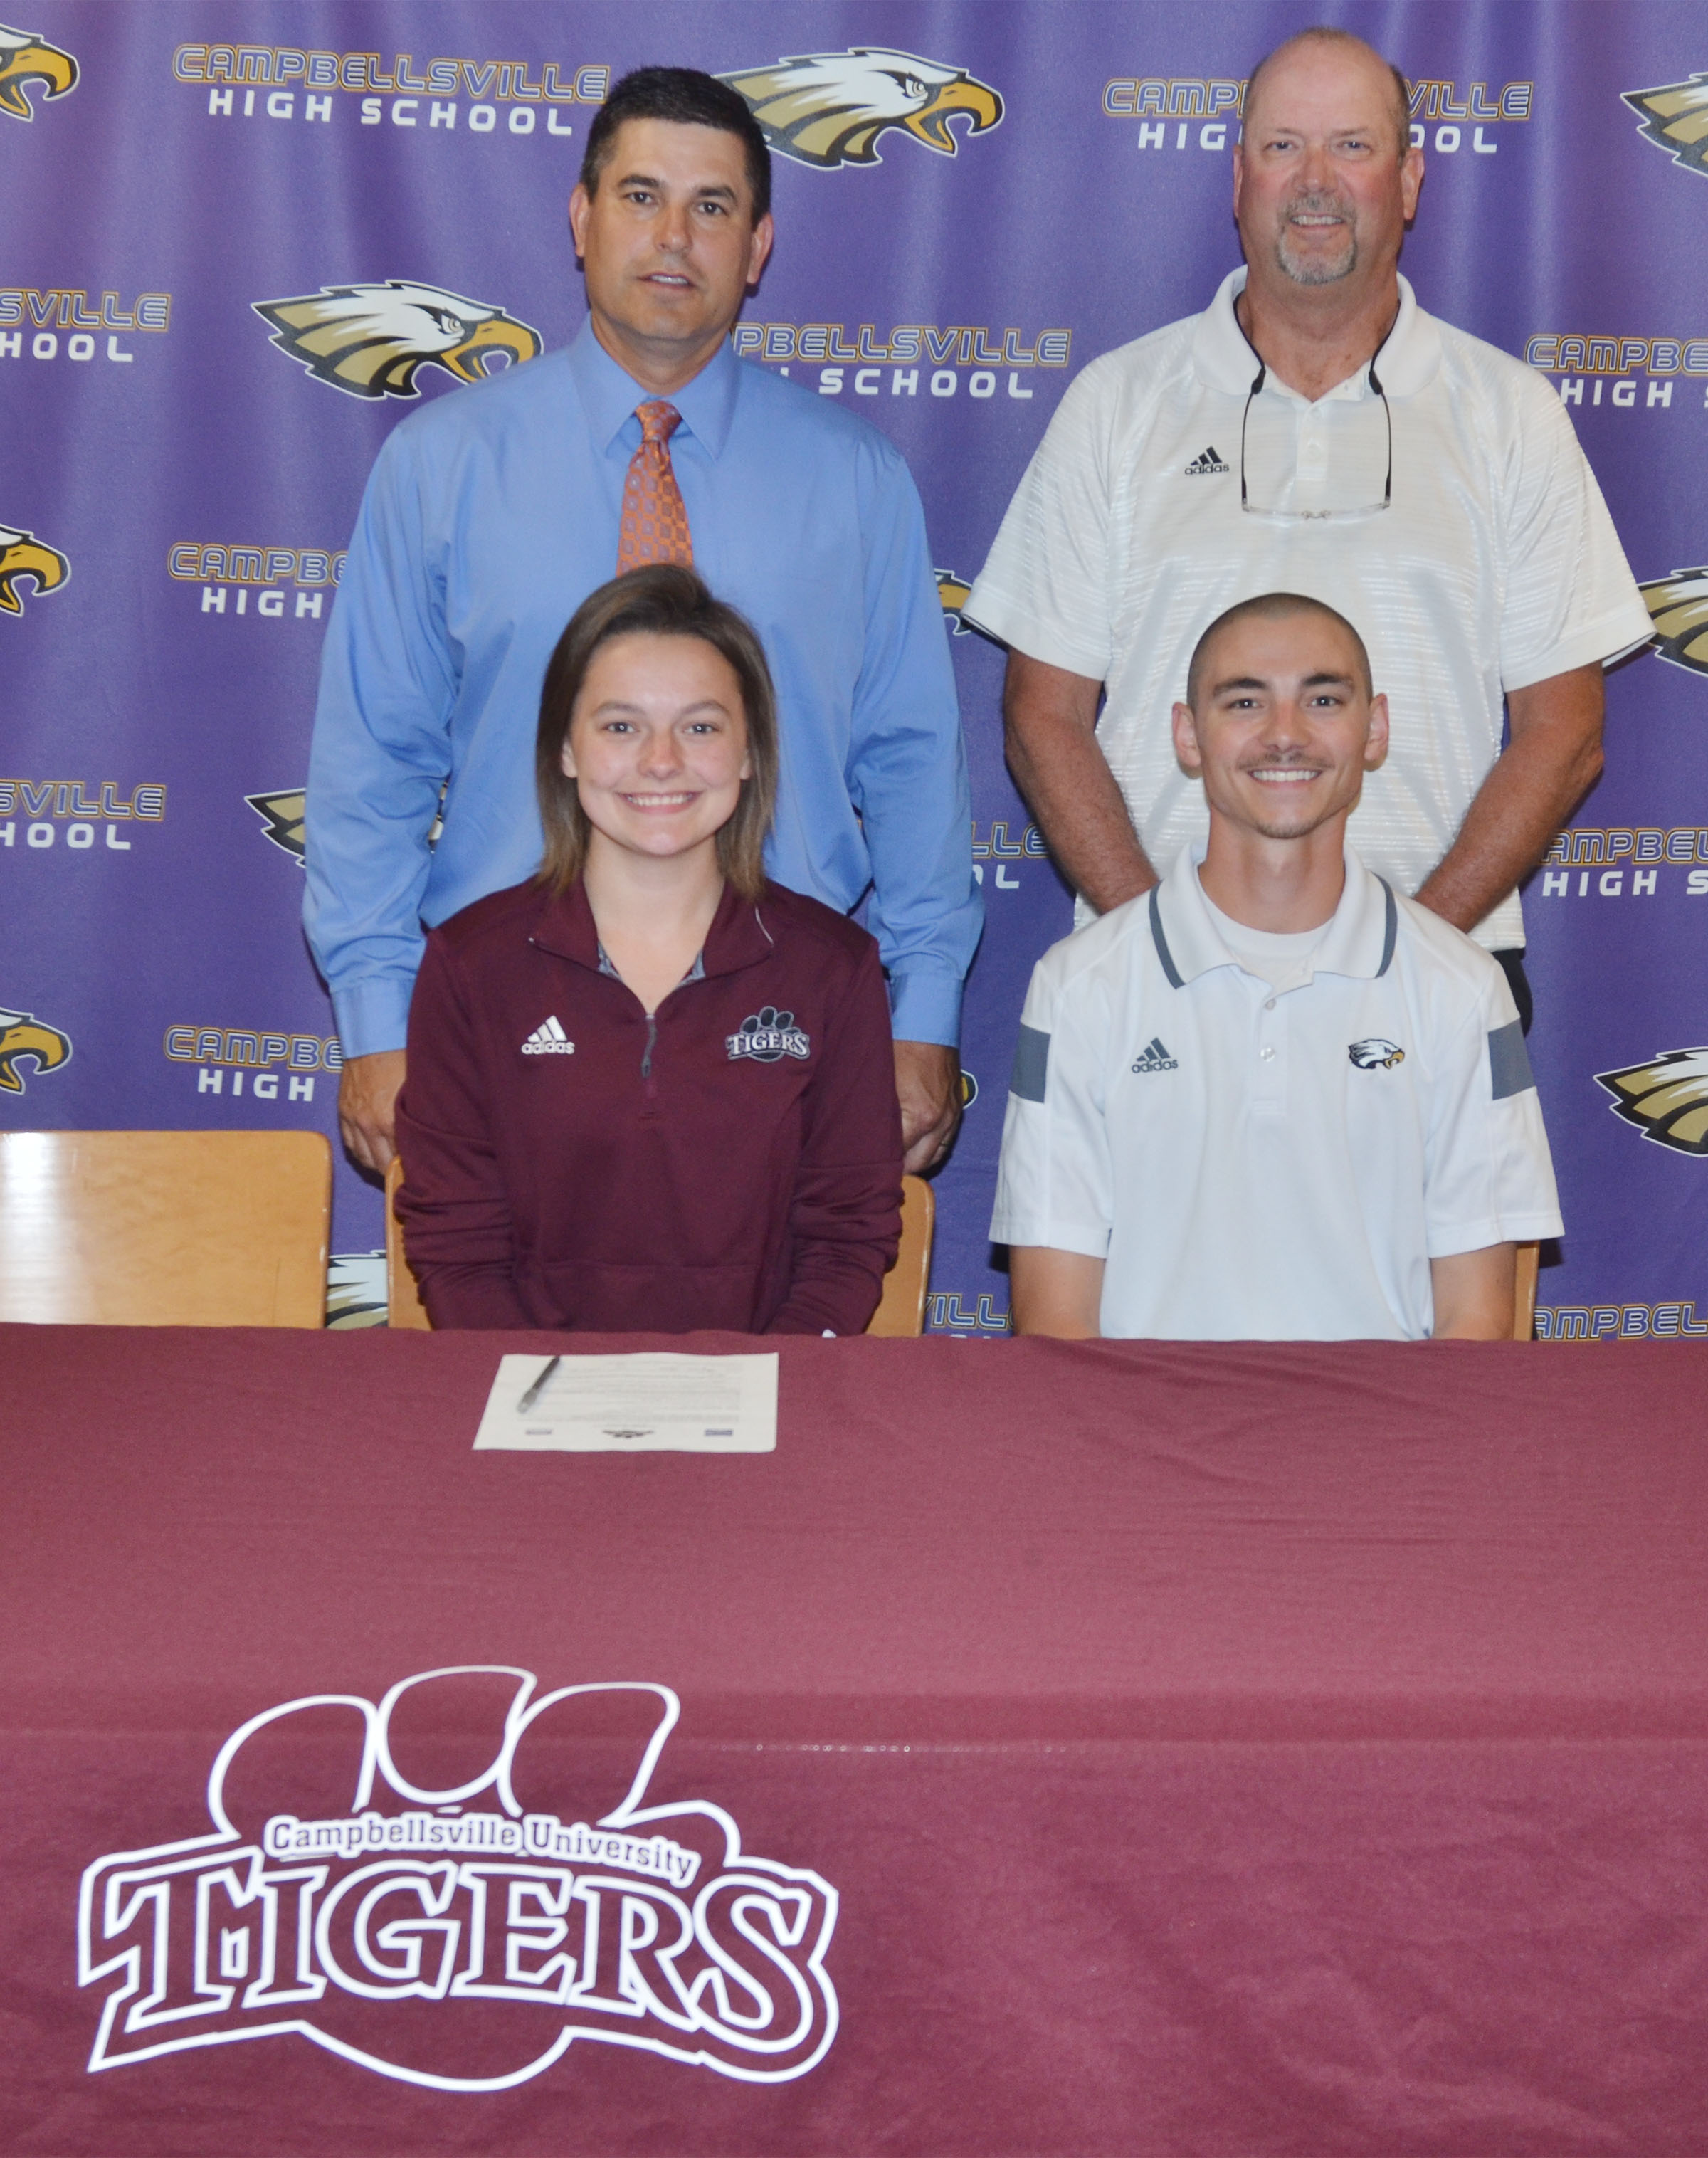 Campbellsville High School senior Kyrsten Hill will continue her academic and tennis career at Campbellsville University this fall. She recently signed her letter of intent in a special ceremony with her family, friends, teammates and coaches. Hill is pictured with CHS tennis coach Bradley Harris. Back, CHS Principal Kirby Smith, at left, and CHS athletic director Tim Davis.